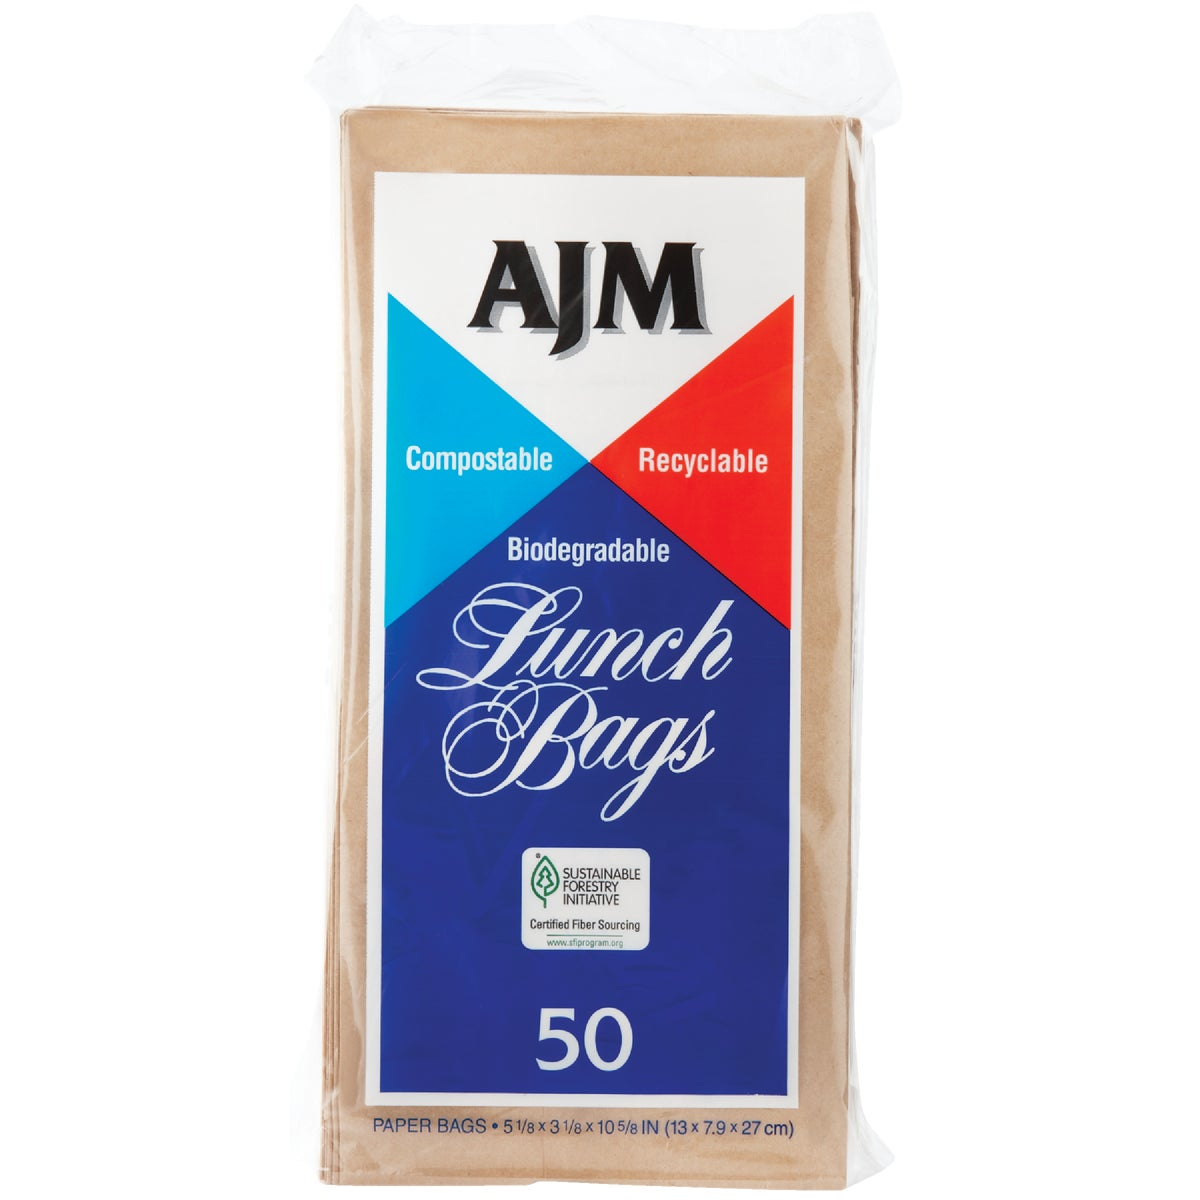 50CT PAPER LUNCH BAG - LB24LAJ by A J M Packaging Corp